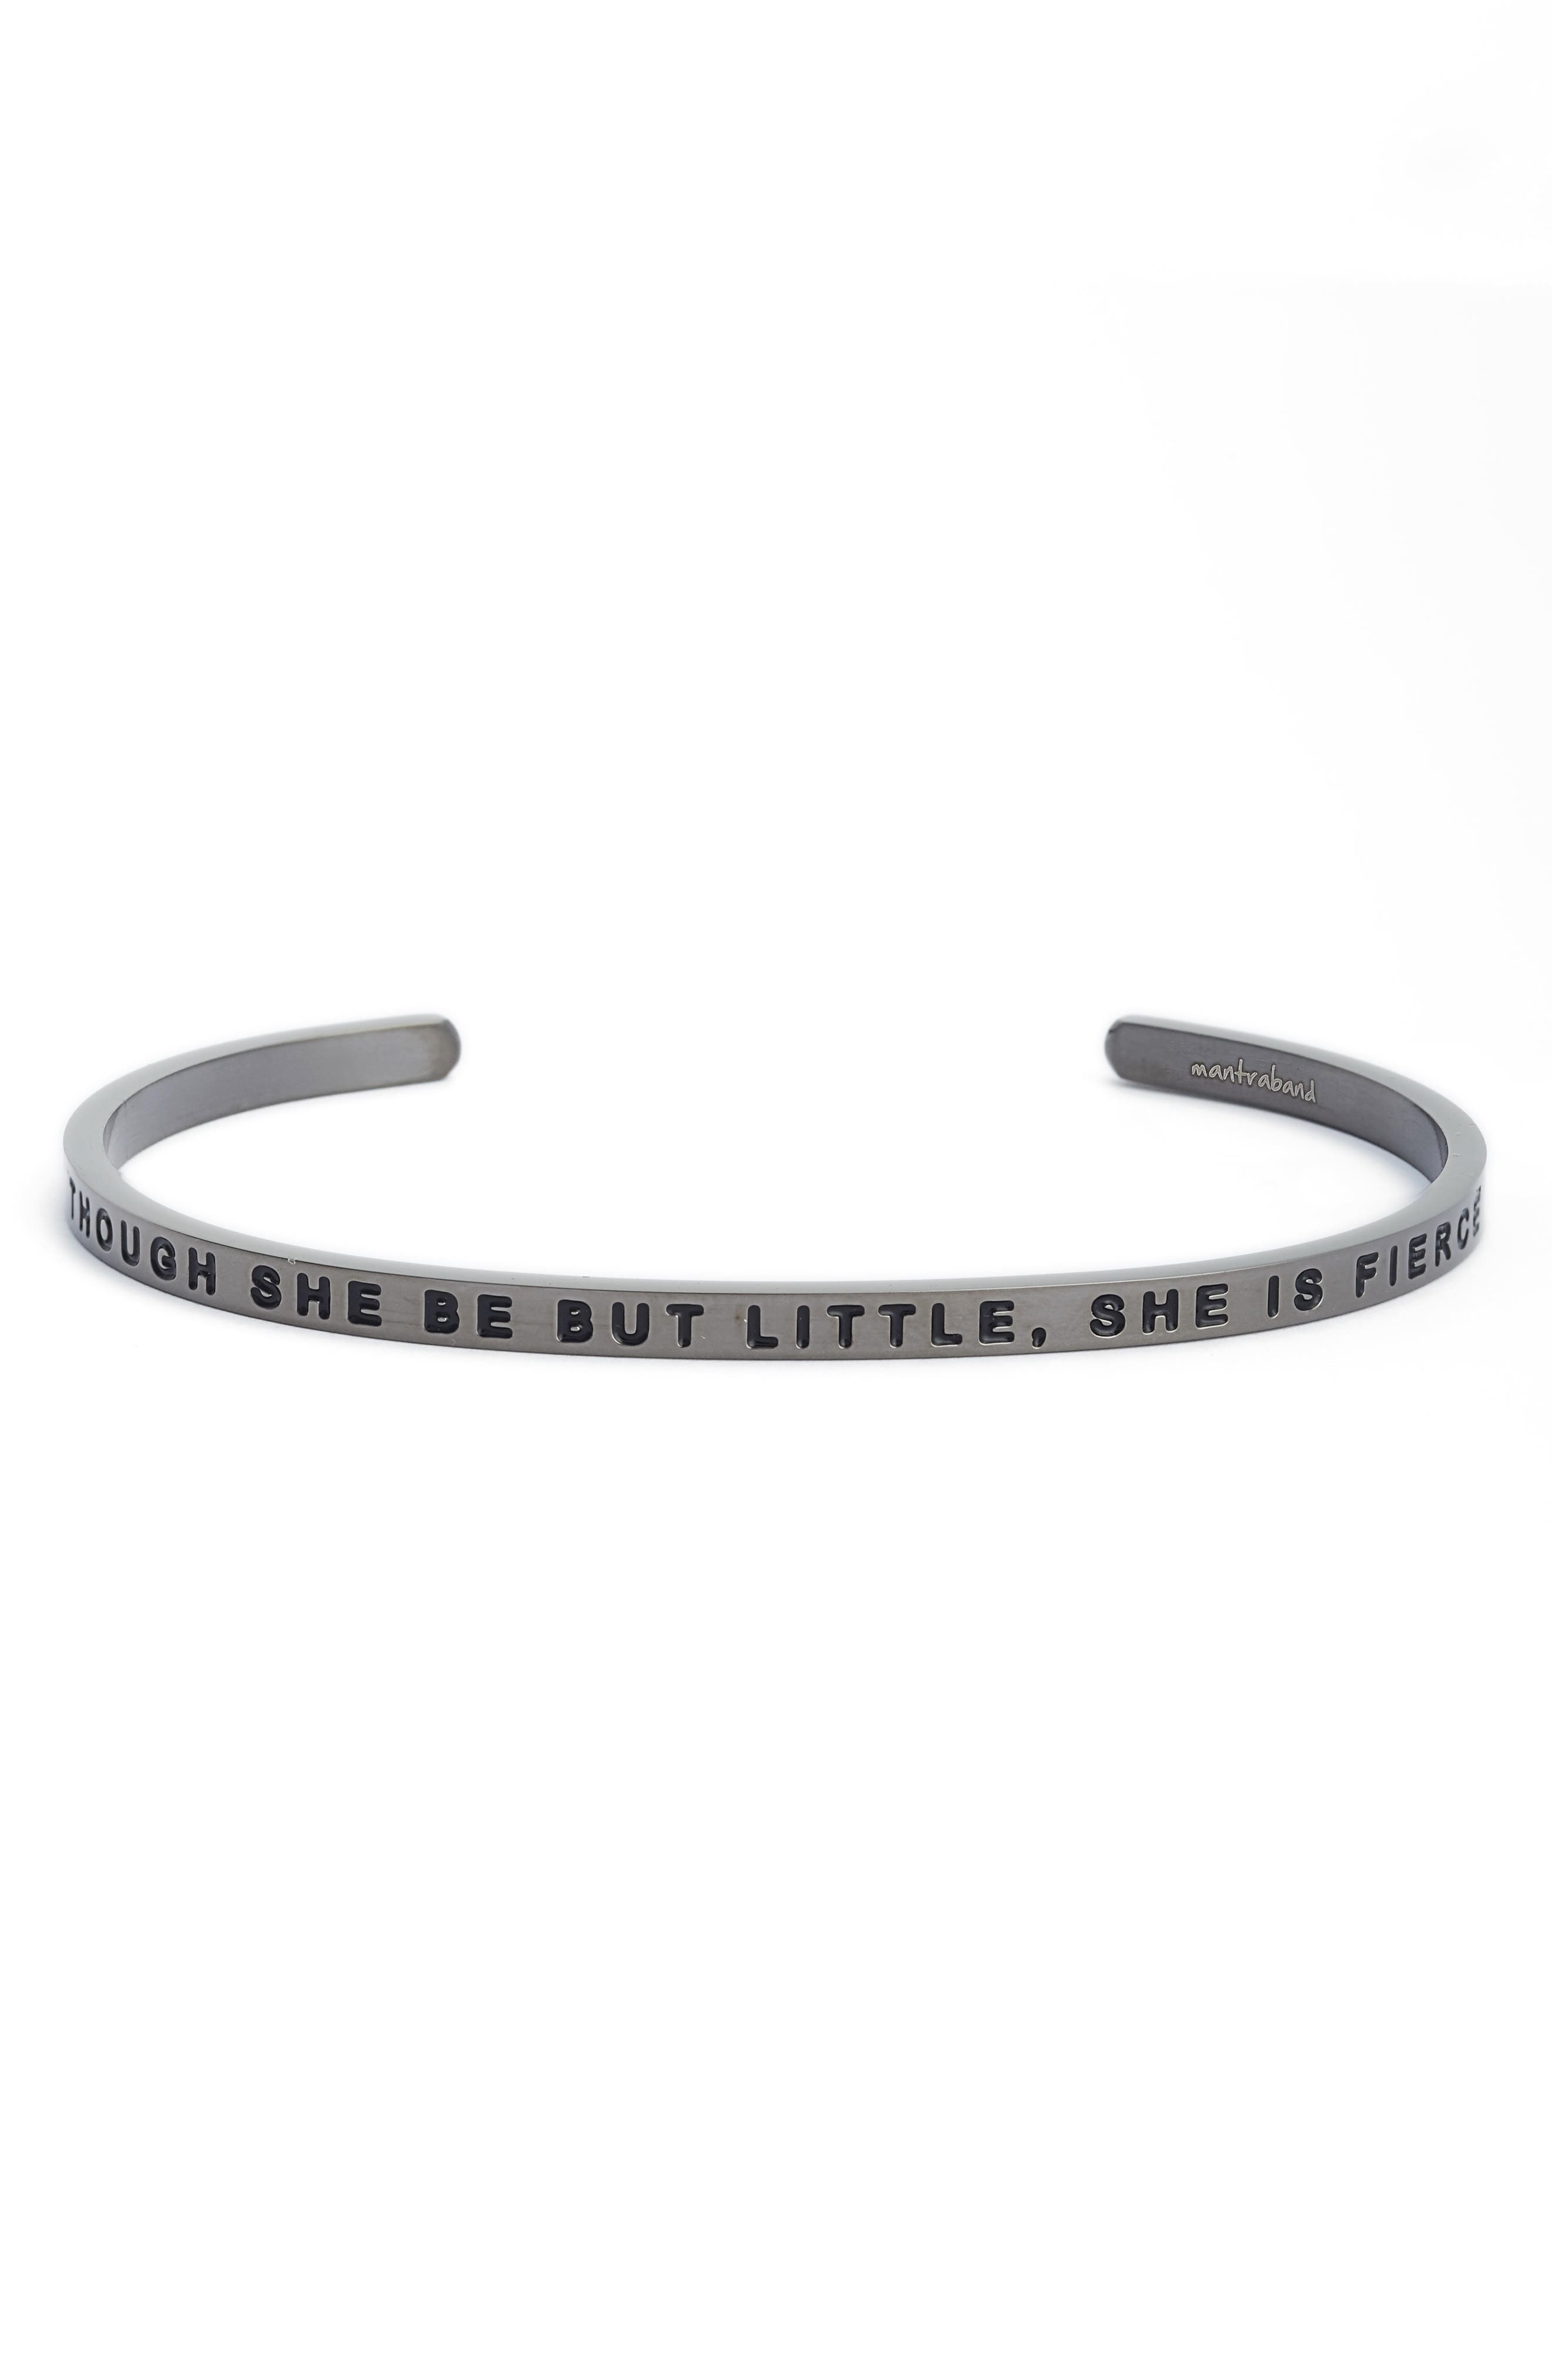 MantraBand® Though She Be but Little, She Is Fierce Cuff Bracelet